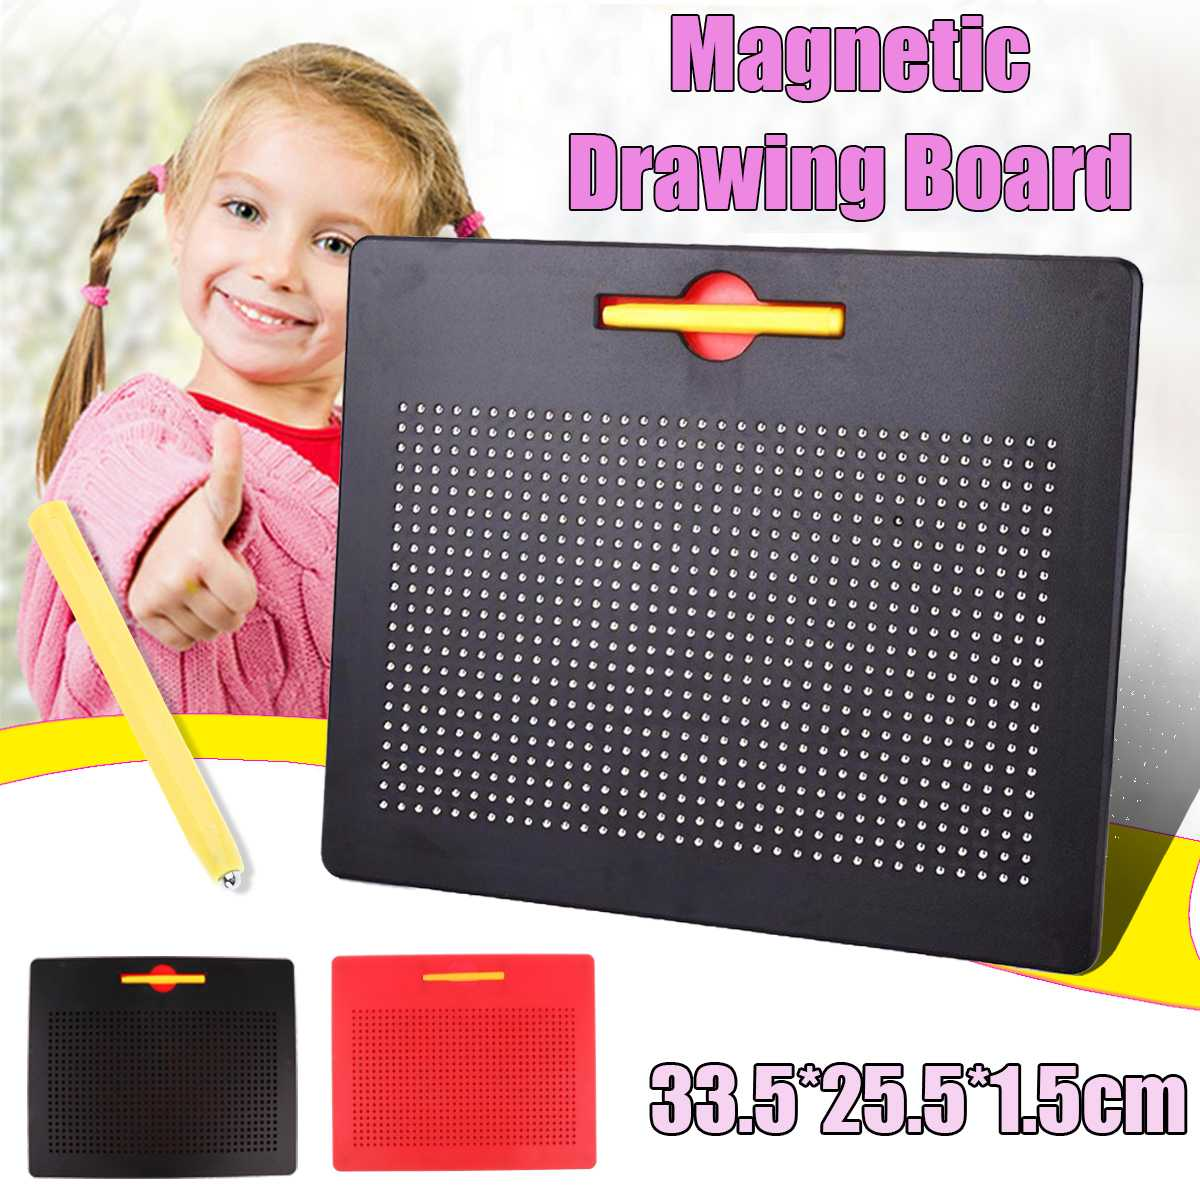 Magnetic Tablet Magnet Drawing Board Tablet KId Doodle Writing Toy Educational